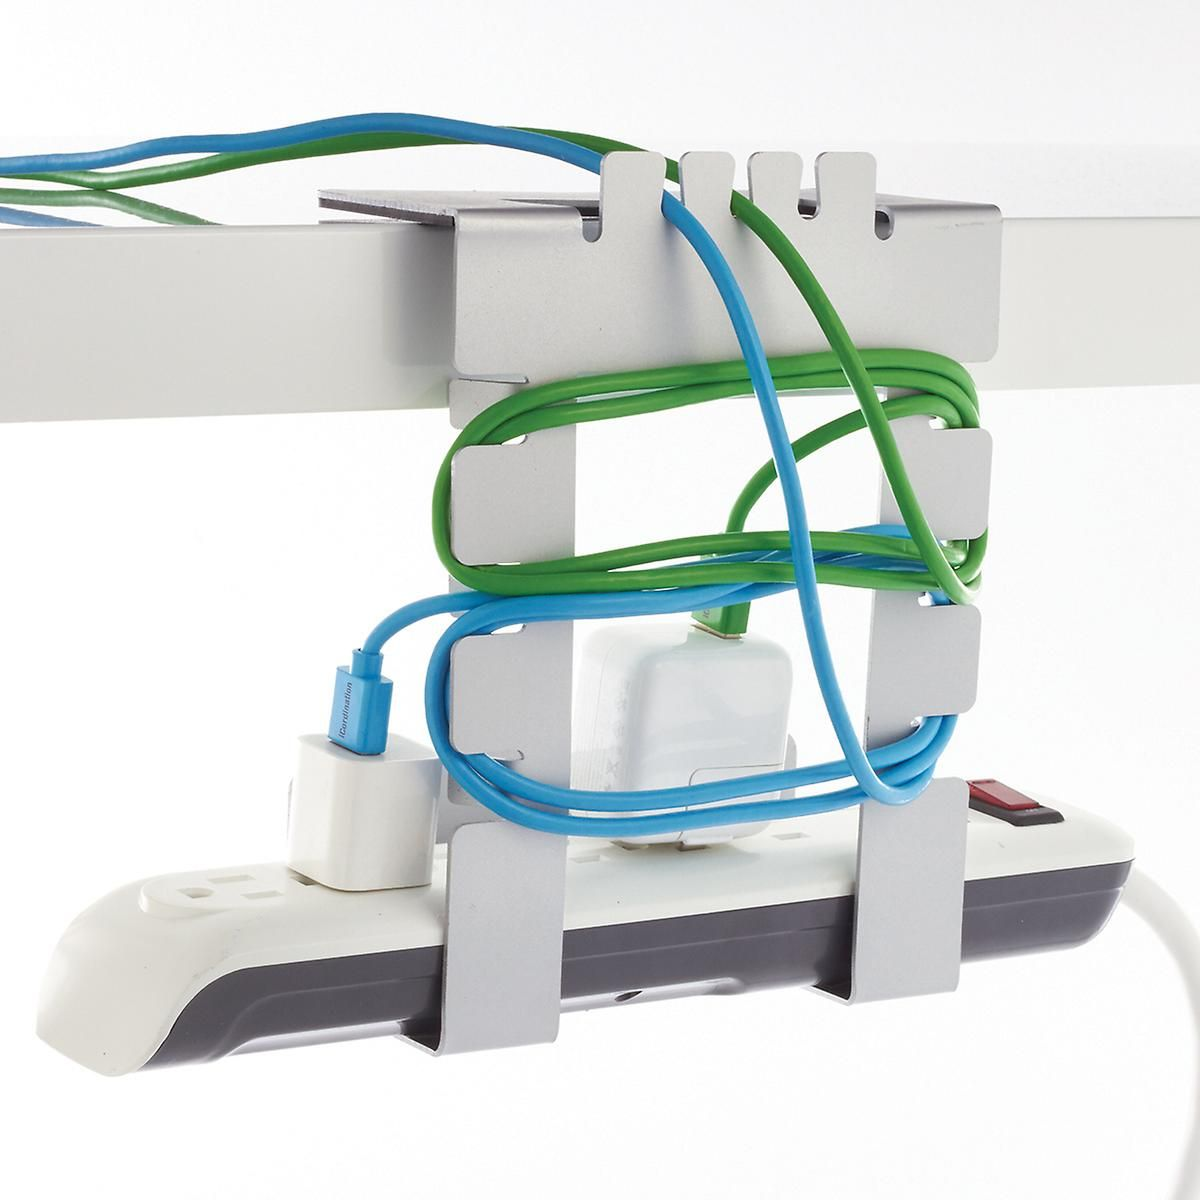 Hanging Cable Loft Cord Organizer The